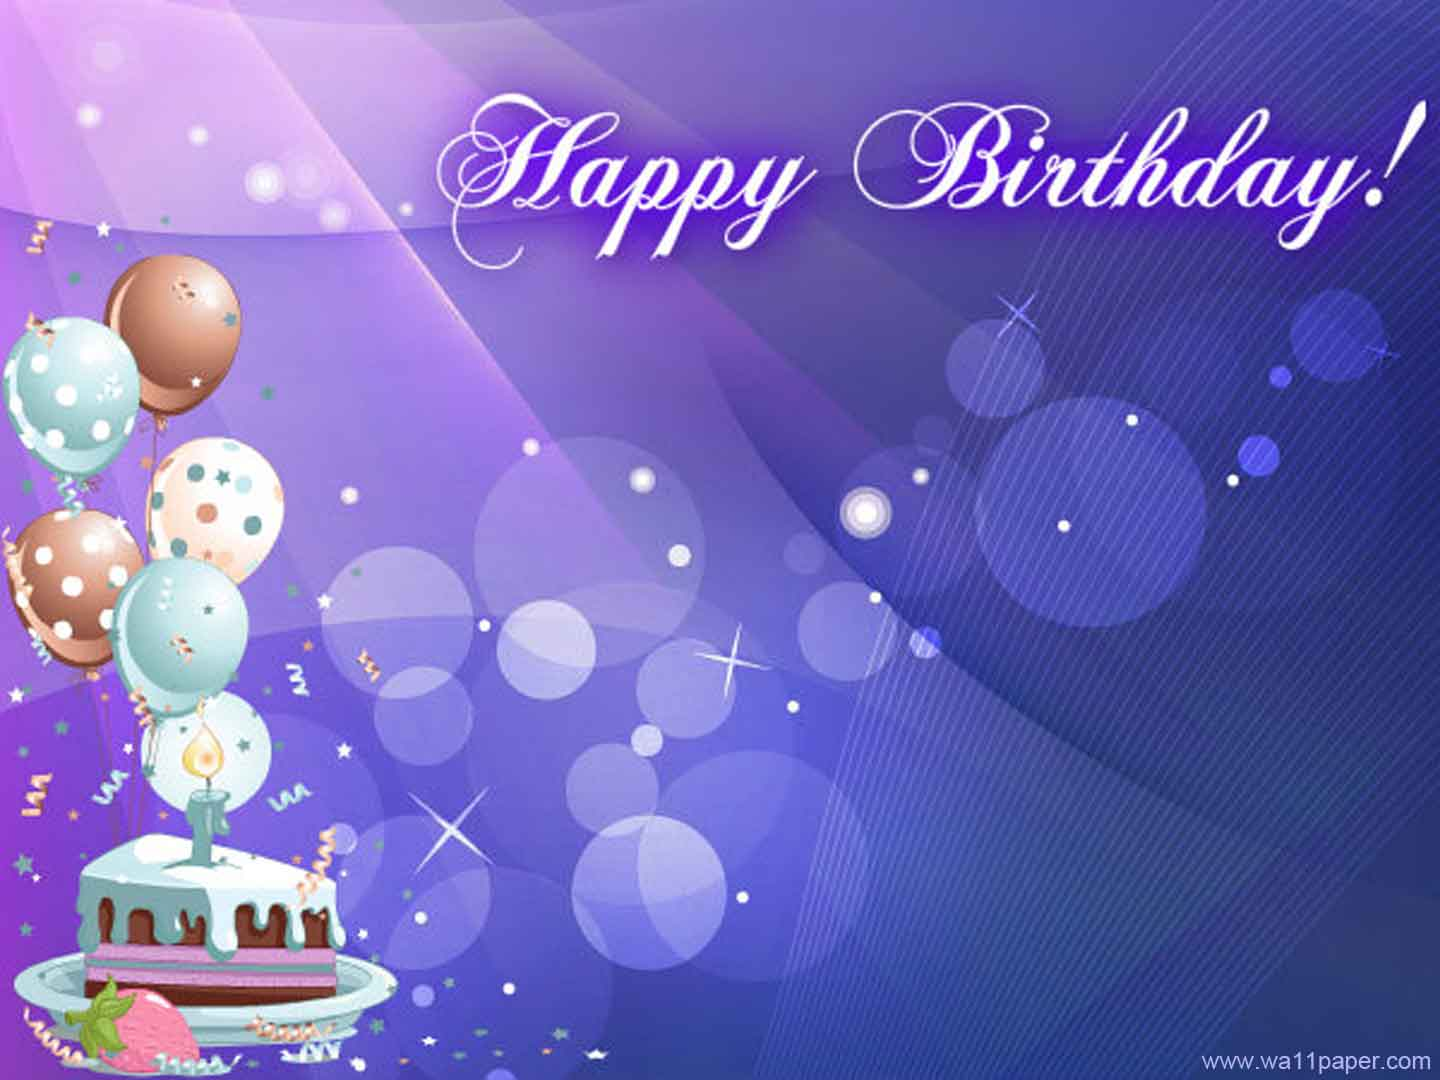 Birthday Backgrounds Wallpaper Cave Happy Birthday Wishes For On Wall